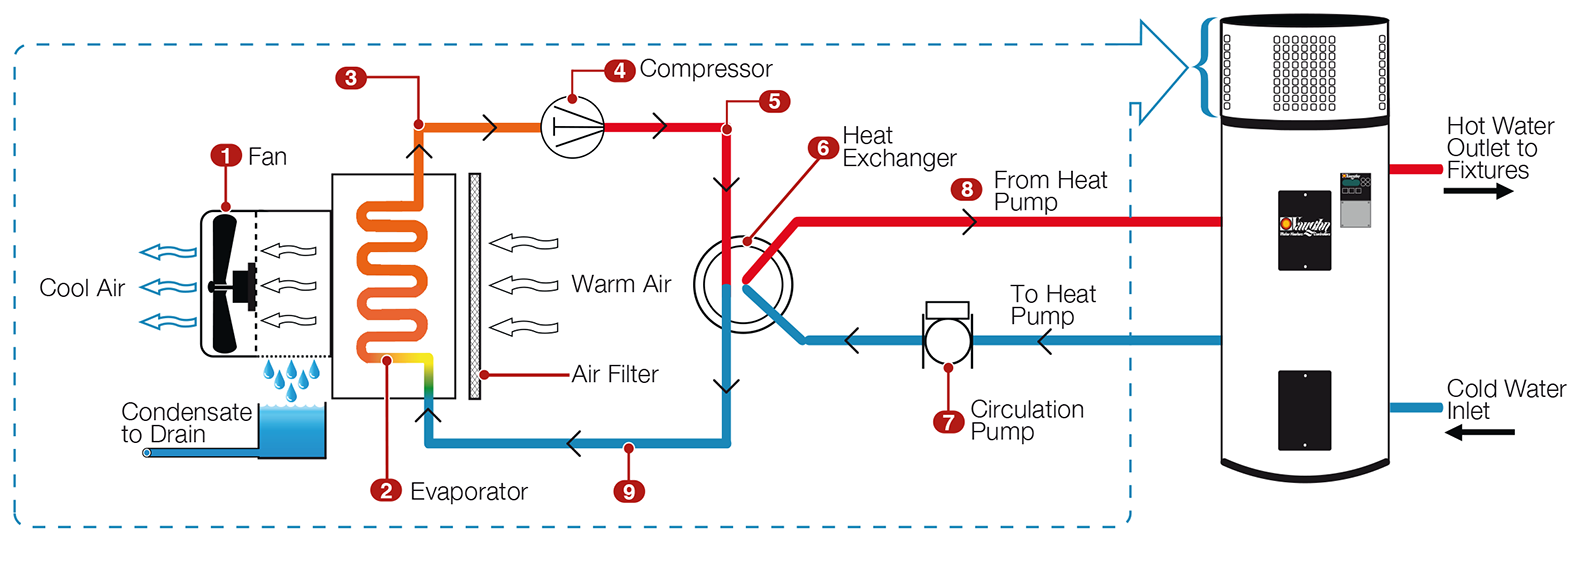 Trane Electric Heater With Fan Not Lossing Wiring Diagram Furnace Camstat Control Wall Heaters Unit Model Numbers